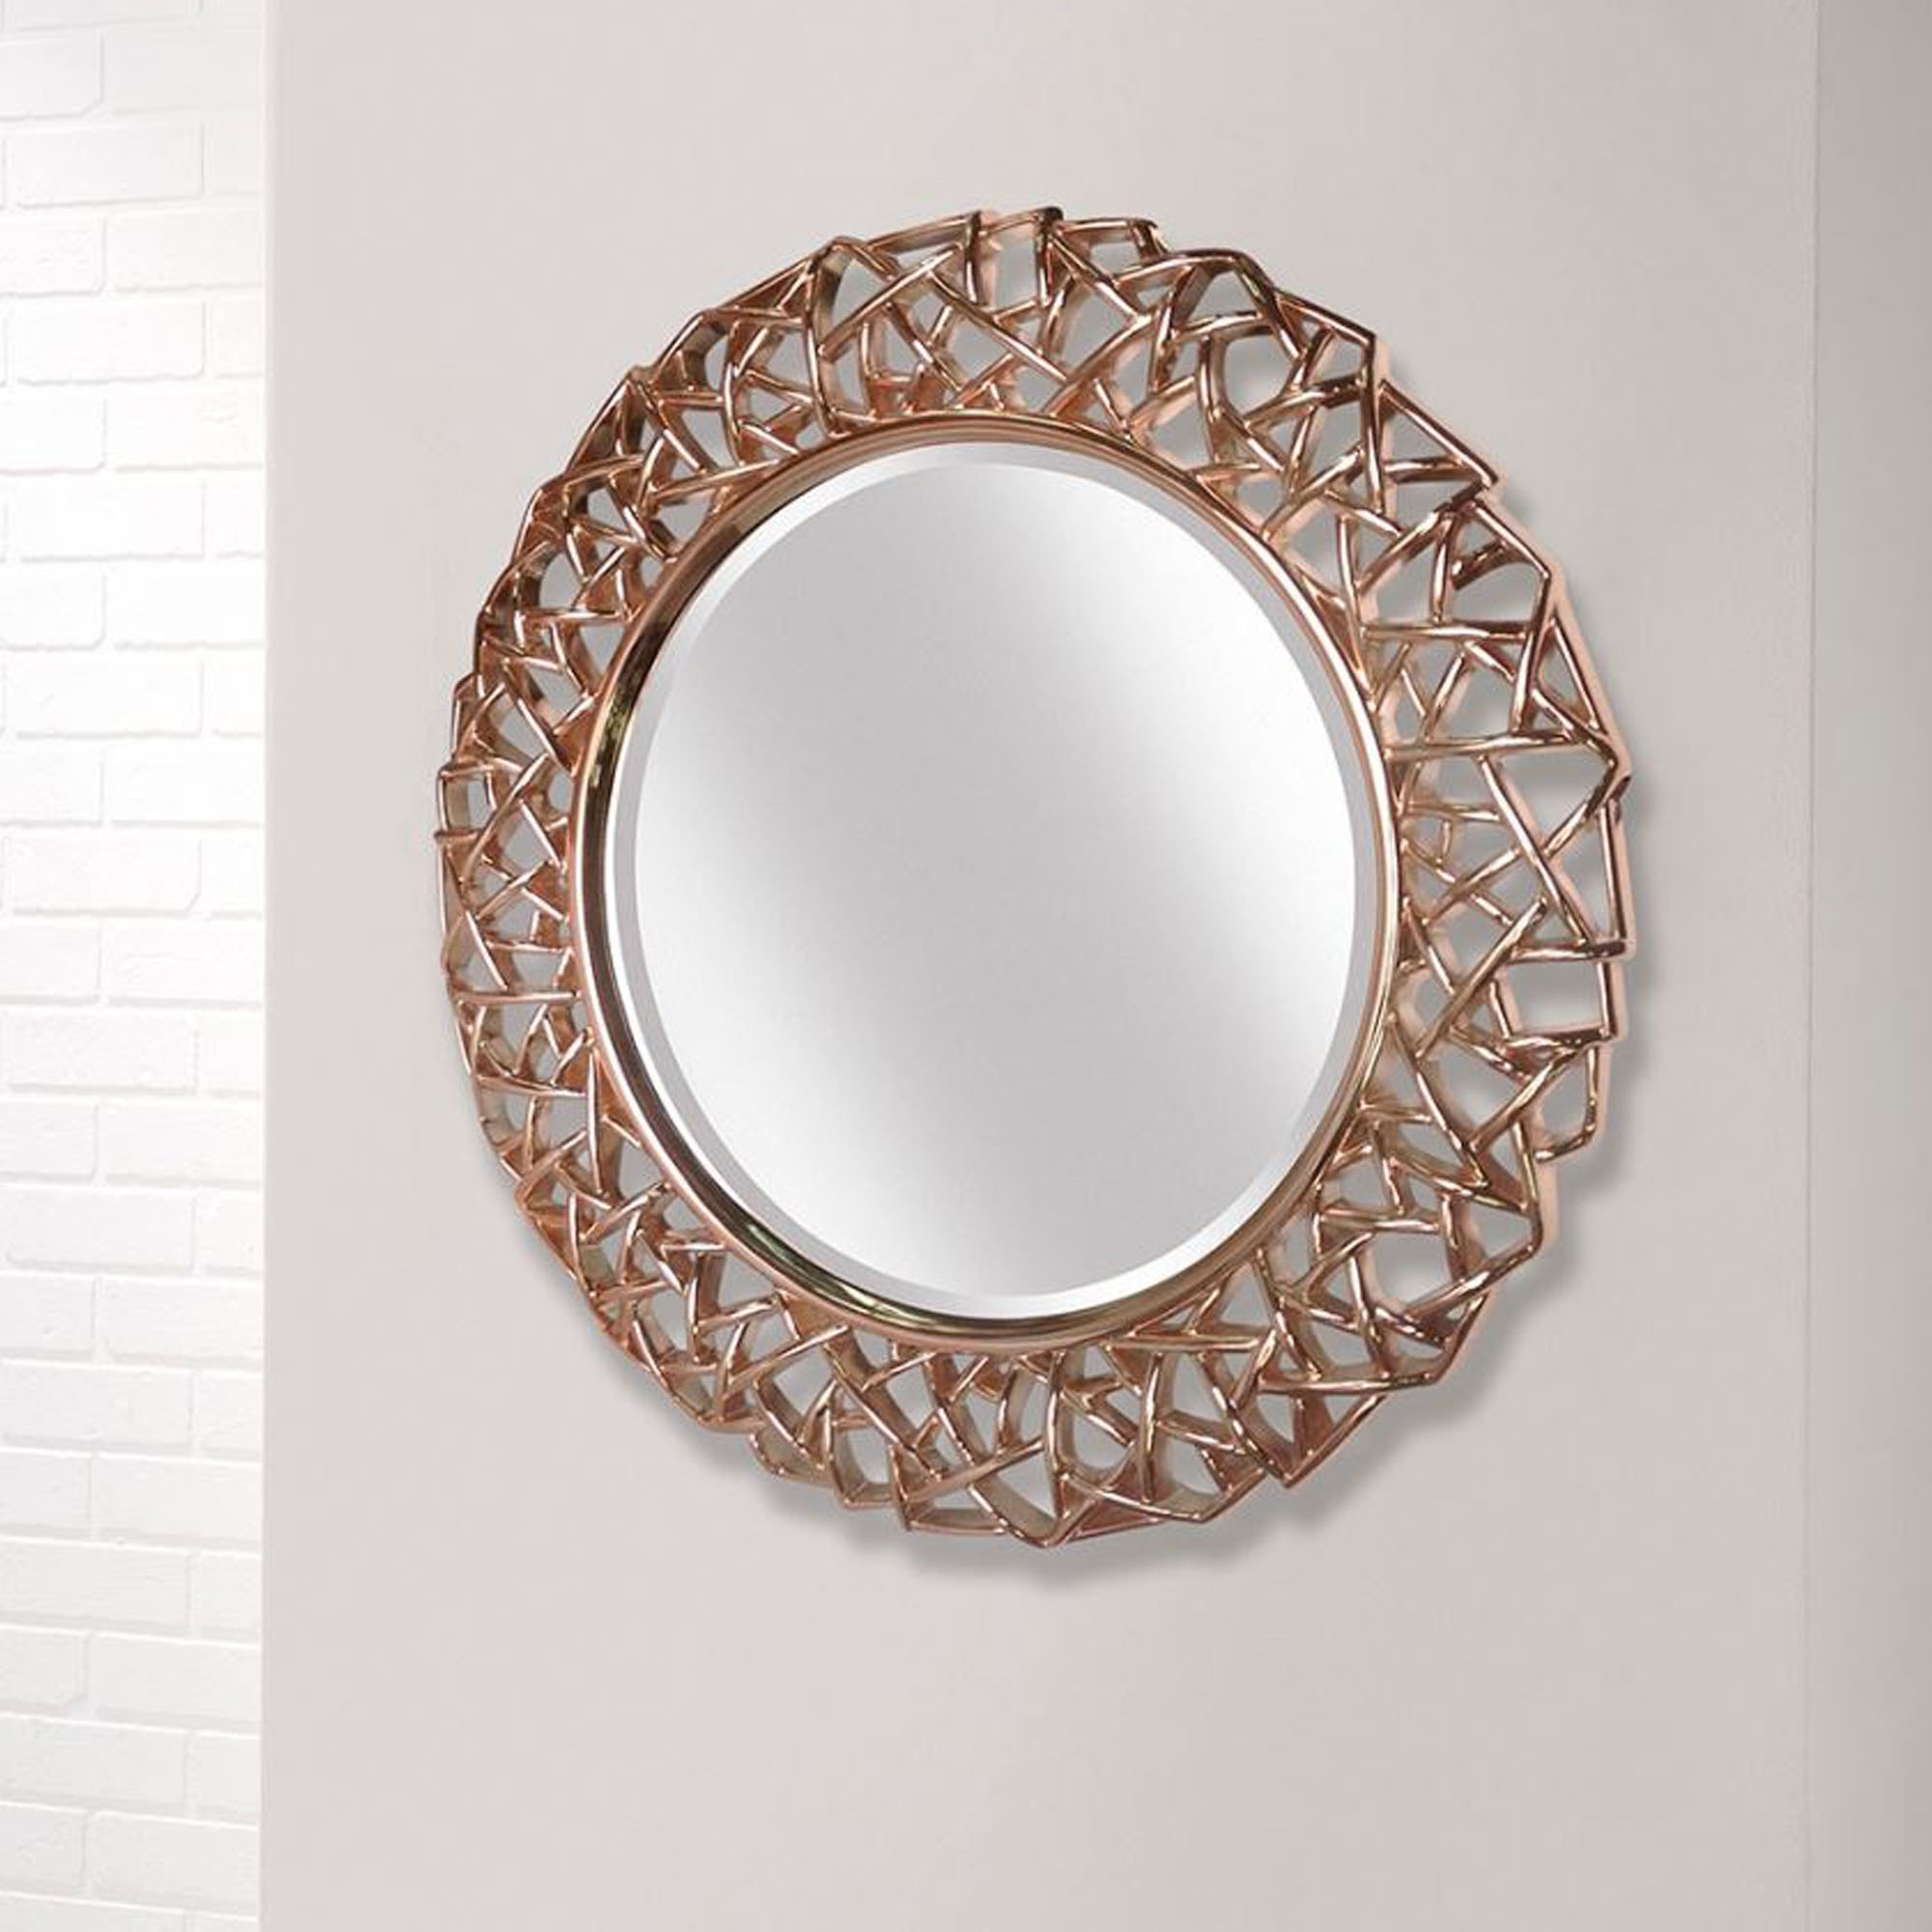 Intricate Rose Gold Round Modern Wall Mirror Intended For 2020 Standard Wall Mirrors (Gallery 3 of 20)